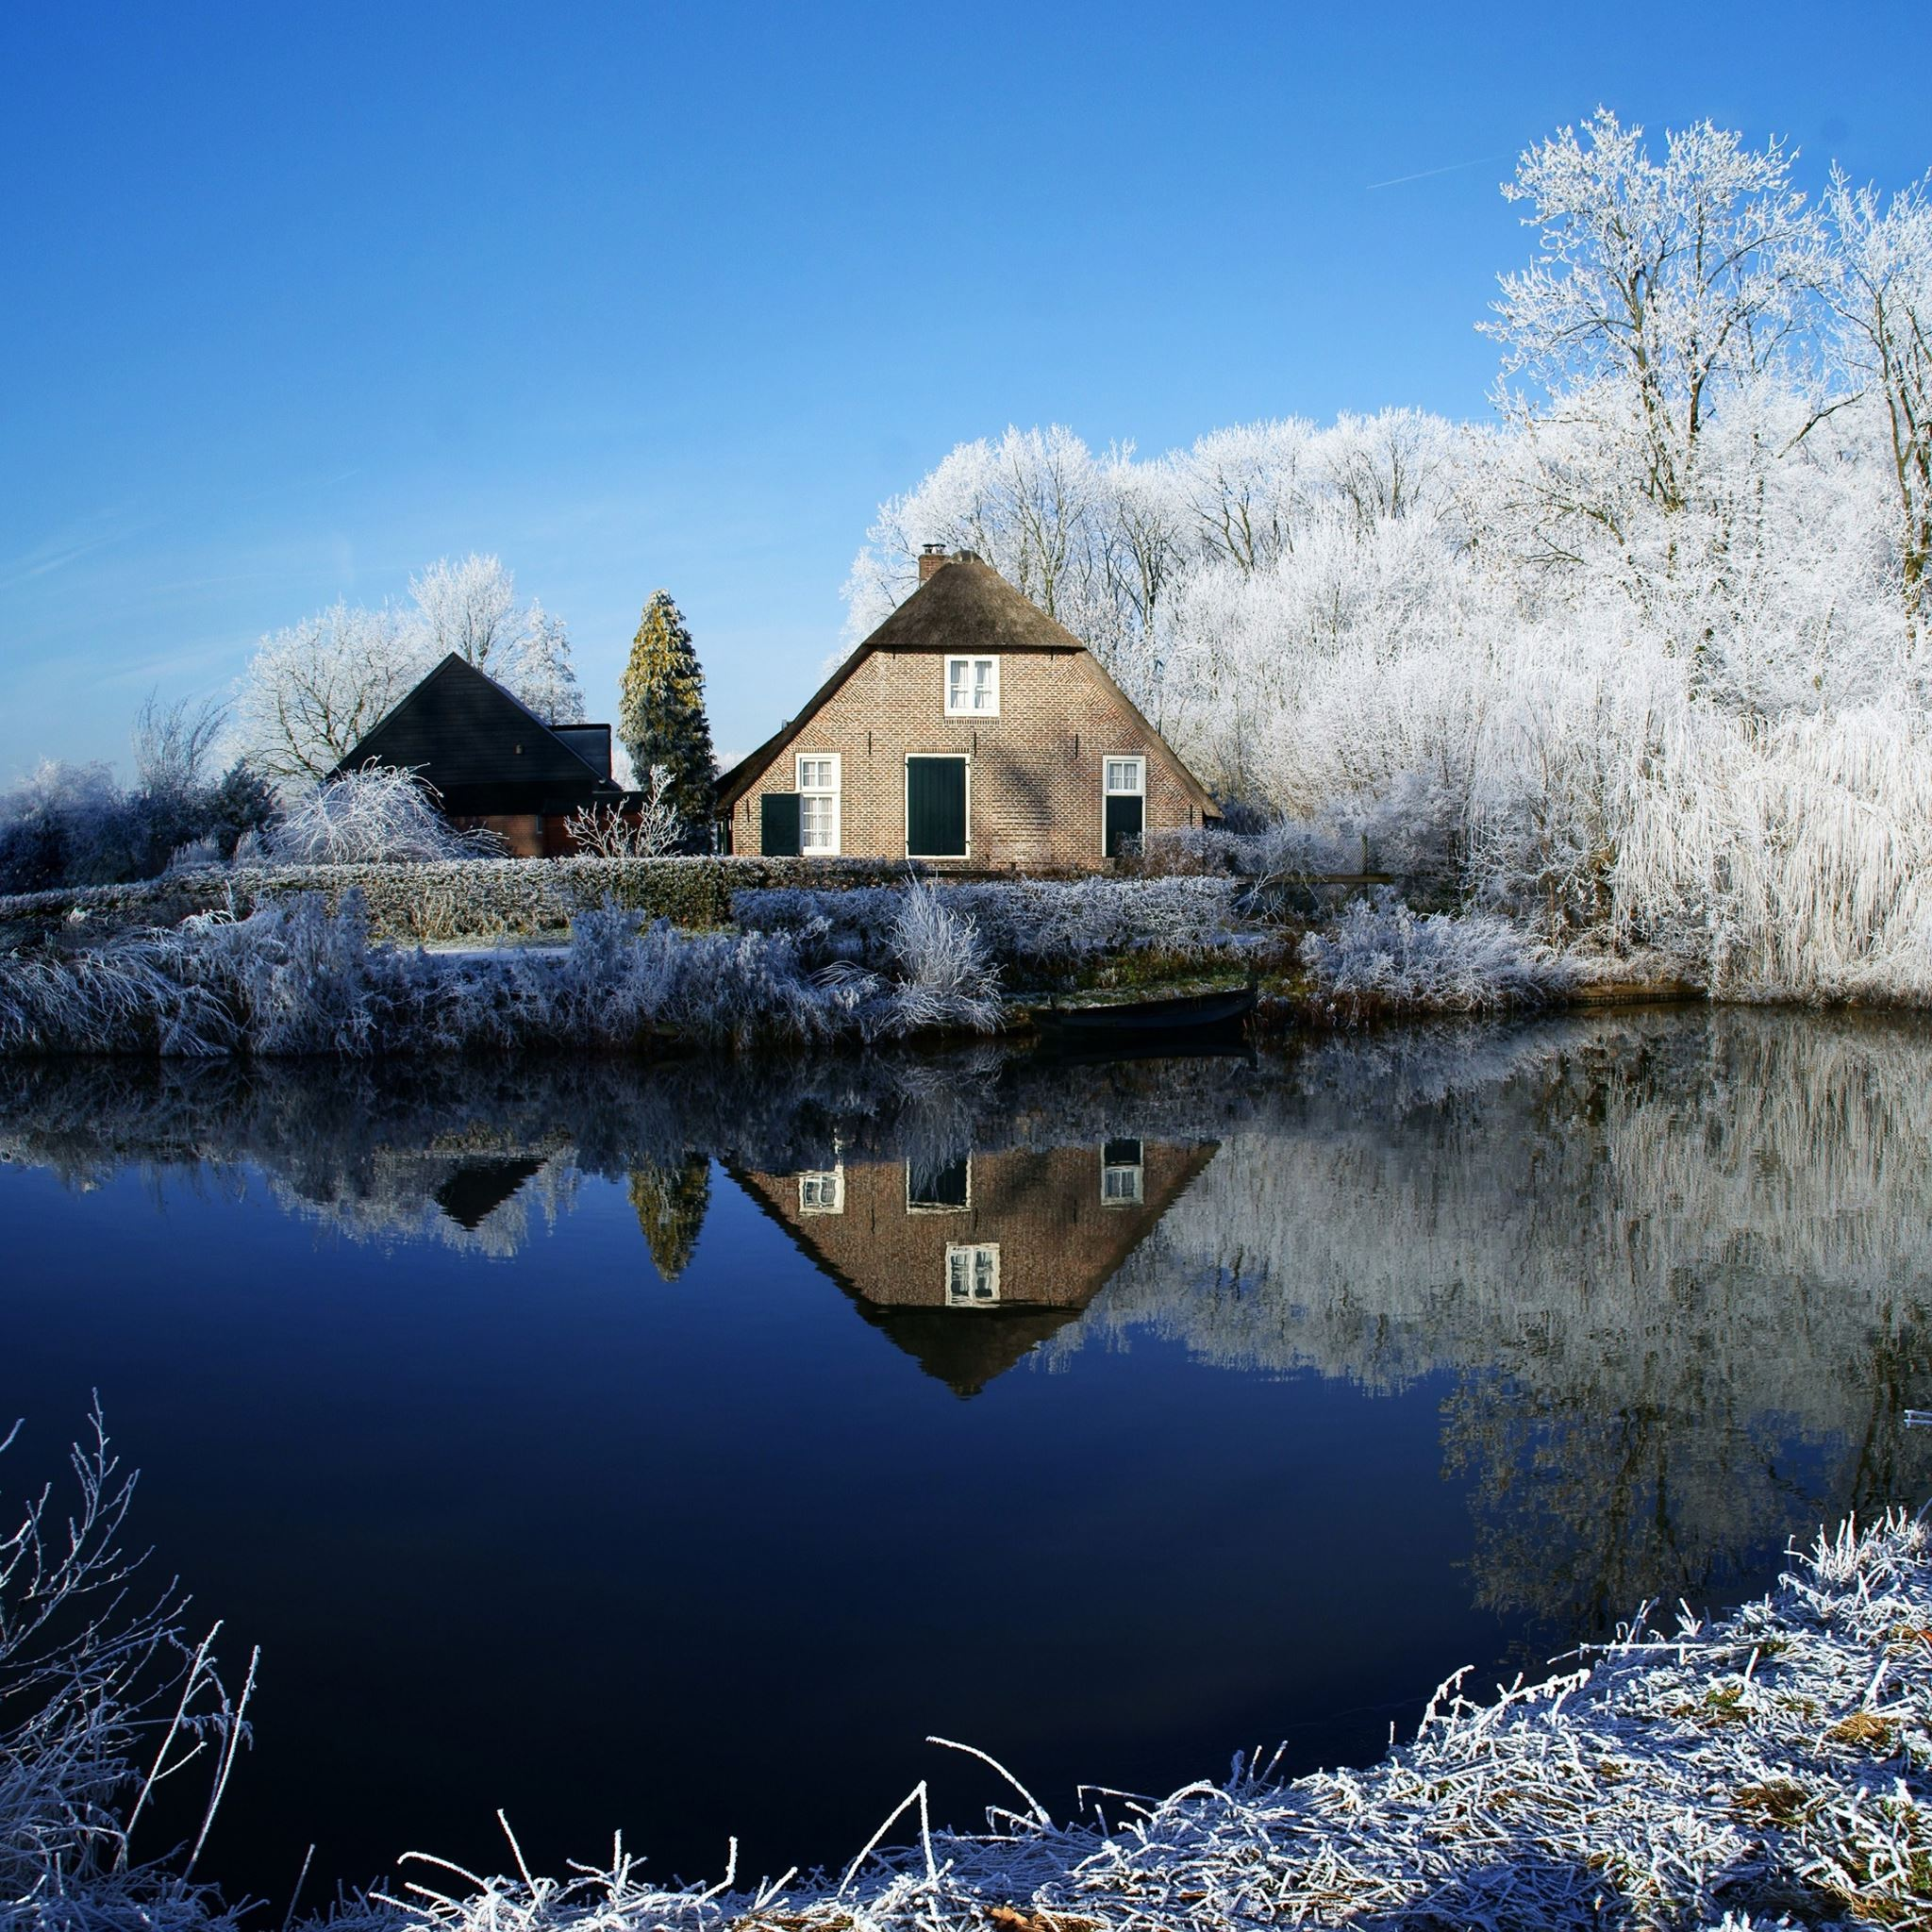 Farmhouse along Kromme Rijn River iPad Air wallpaper